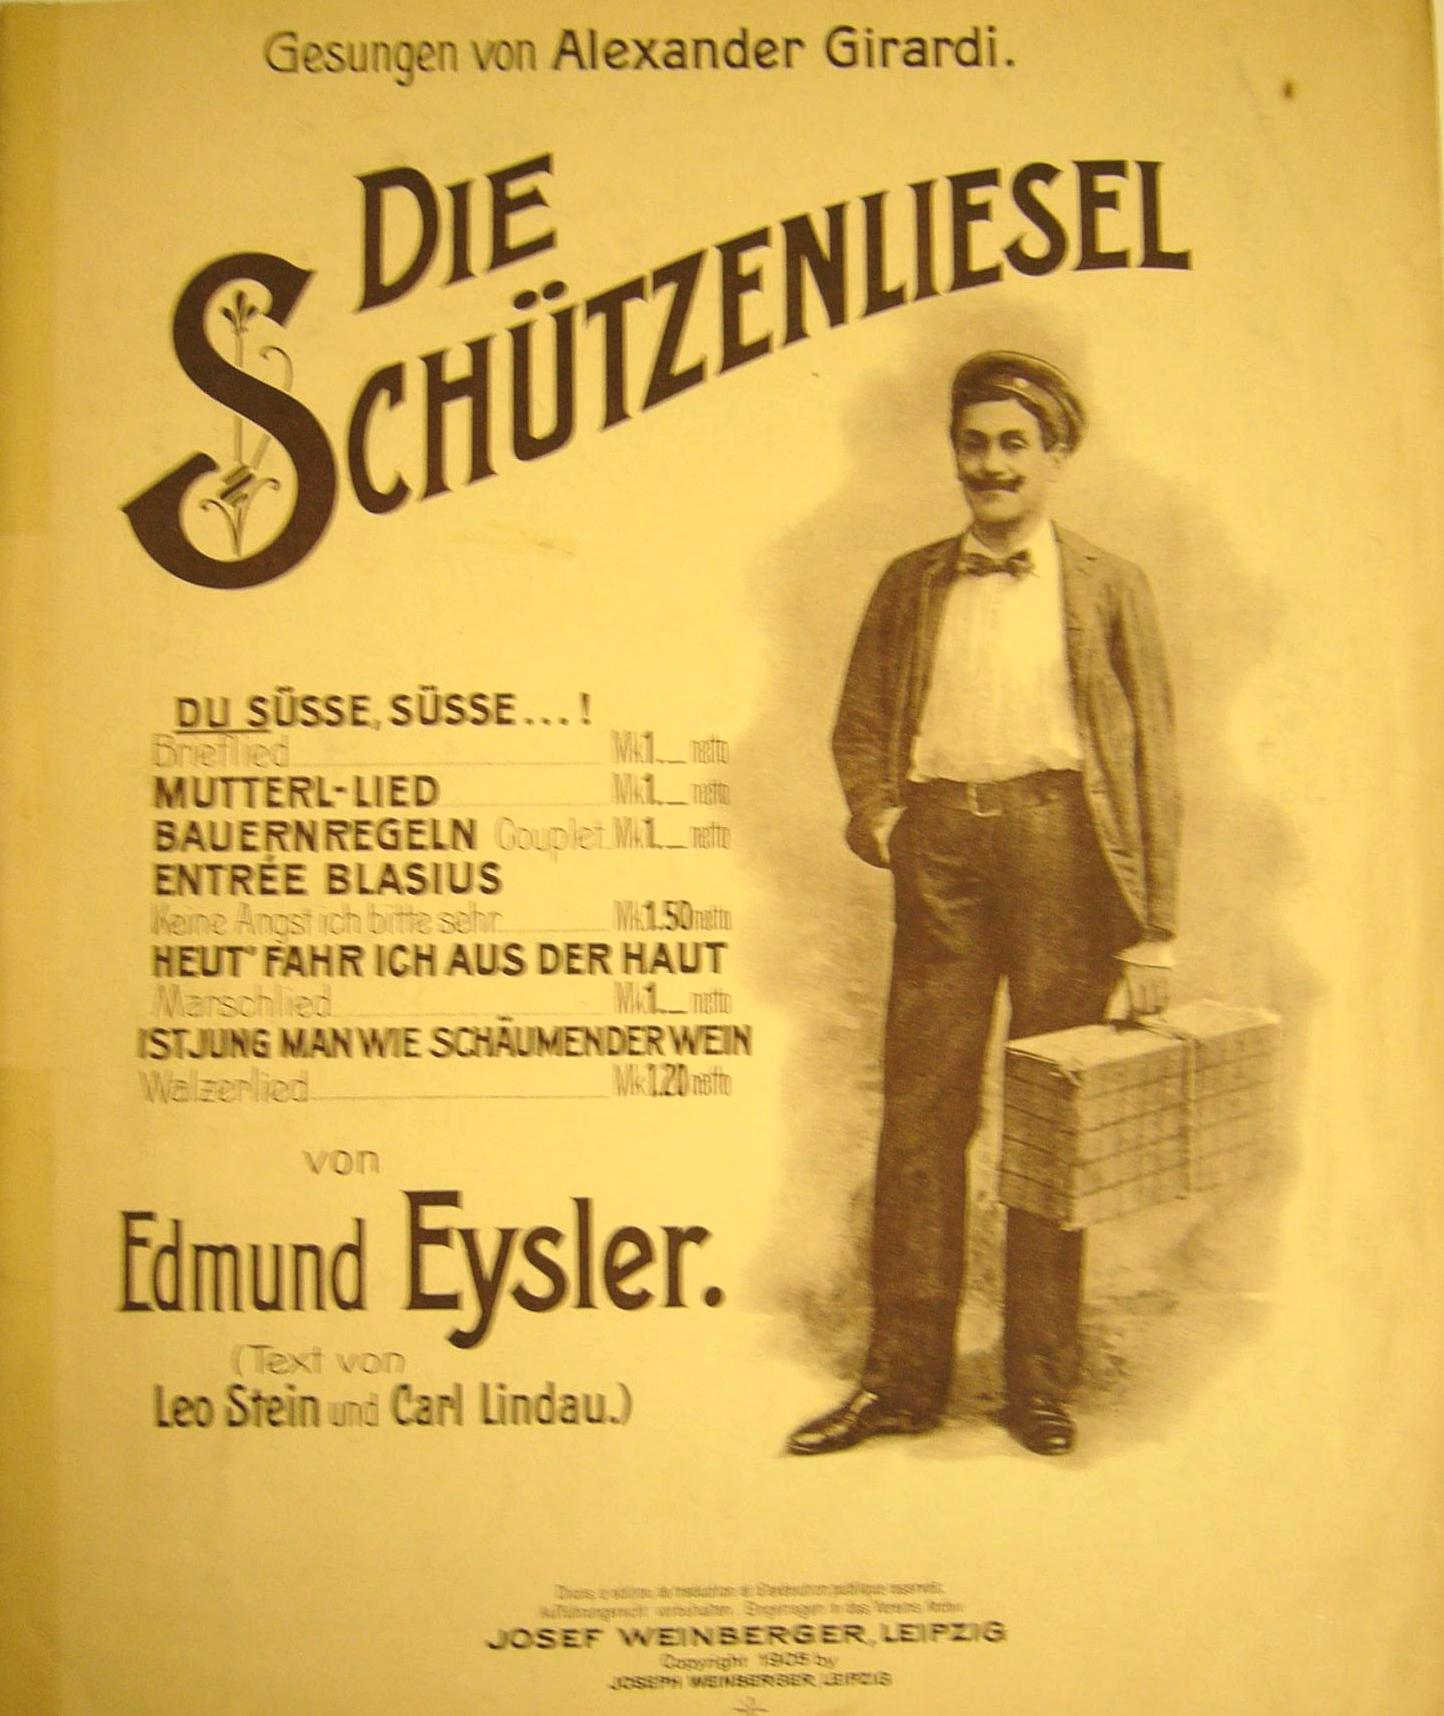 "Sheet music for Eysler's ""Schützenliesel"" with Alexander Girardi on the cover."